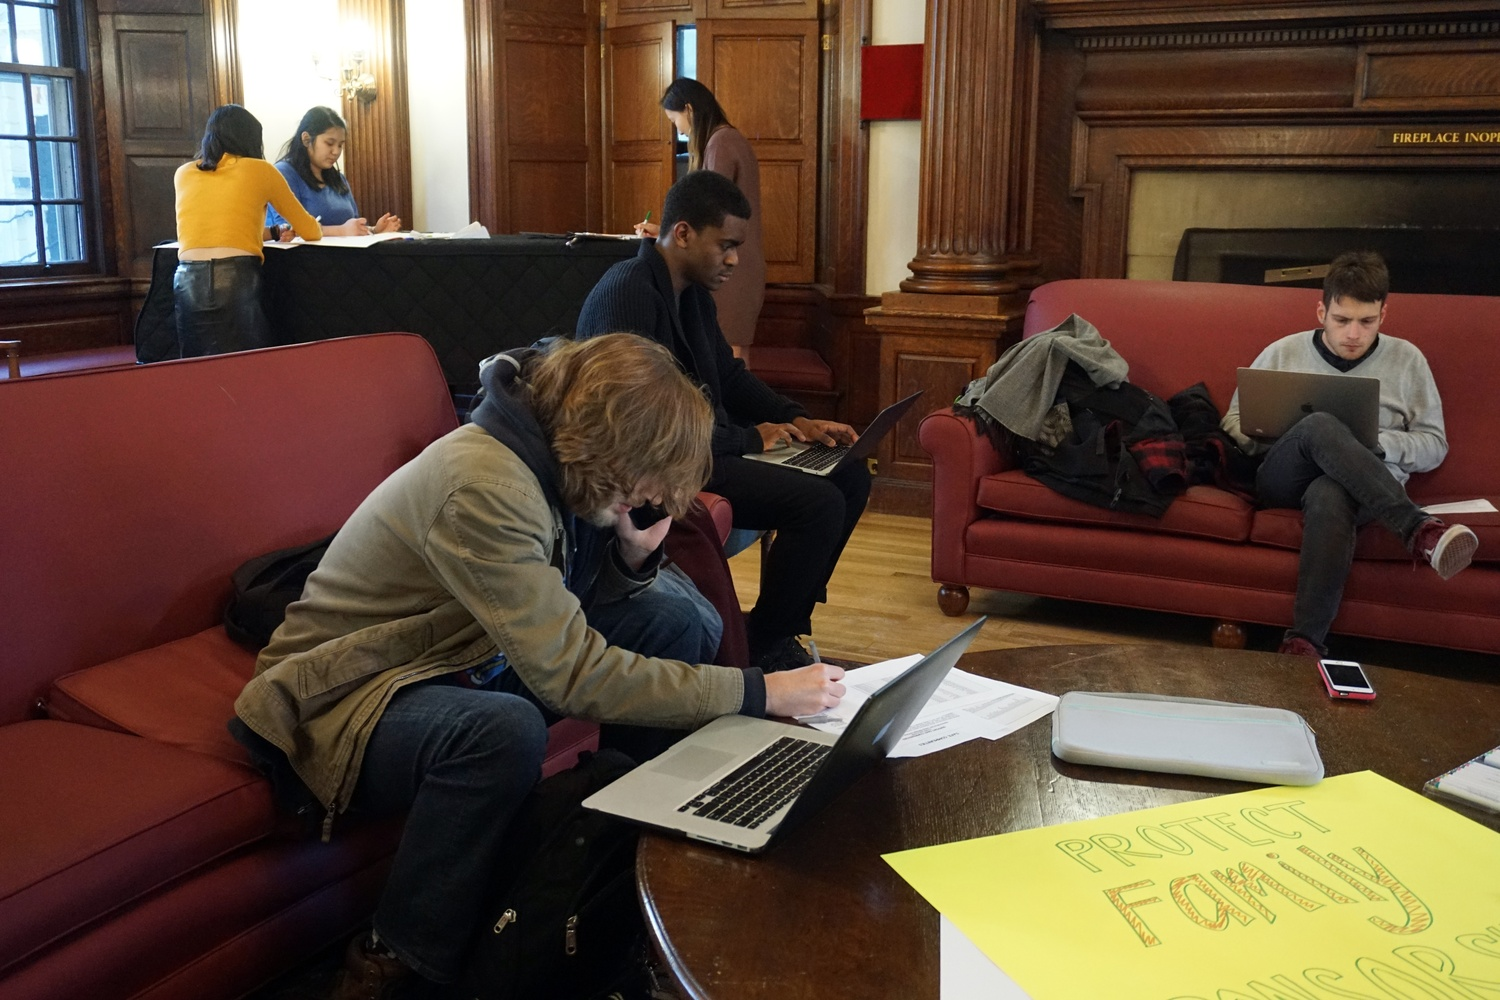 Graduate students gathered in Phillips Brooks House Wednesday afternoon to rally for the Safe Communities Act.